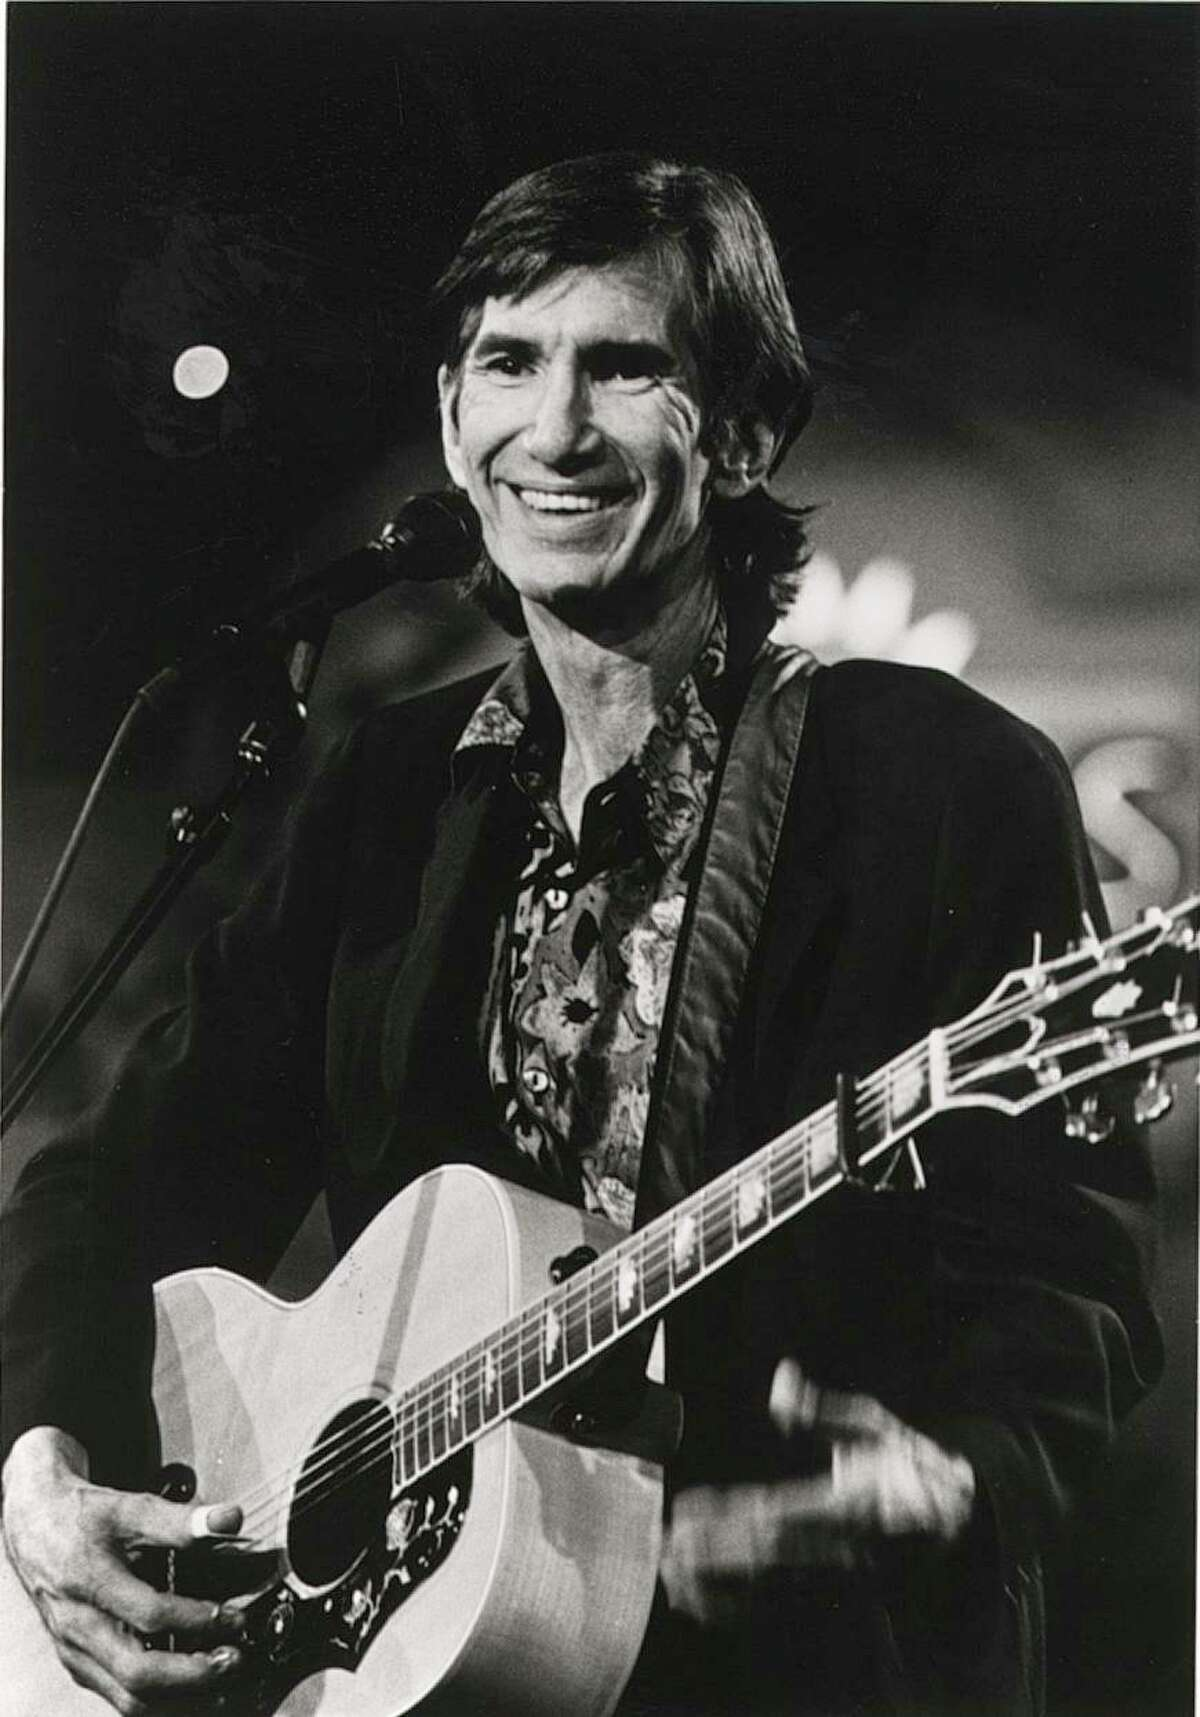 A rake, a rounder, a gambler and a troubadour, Texas singer/songwriter Townes Van Zandt could go dark and stay dark. His music is perfect for a pandemic.